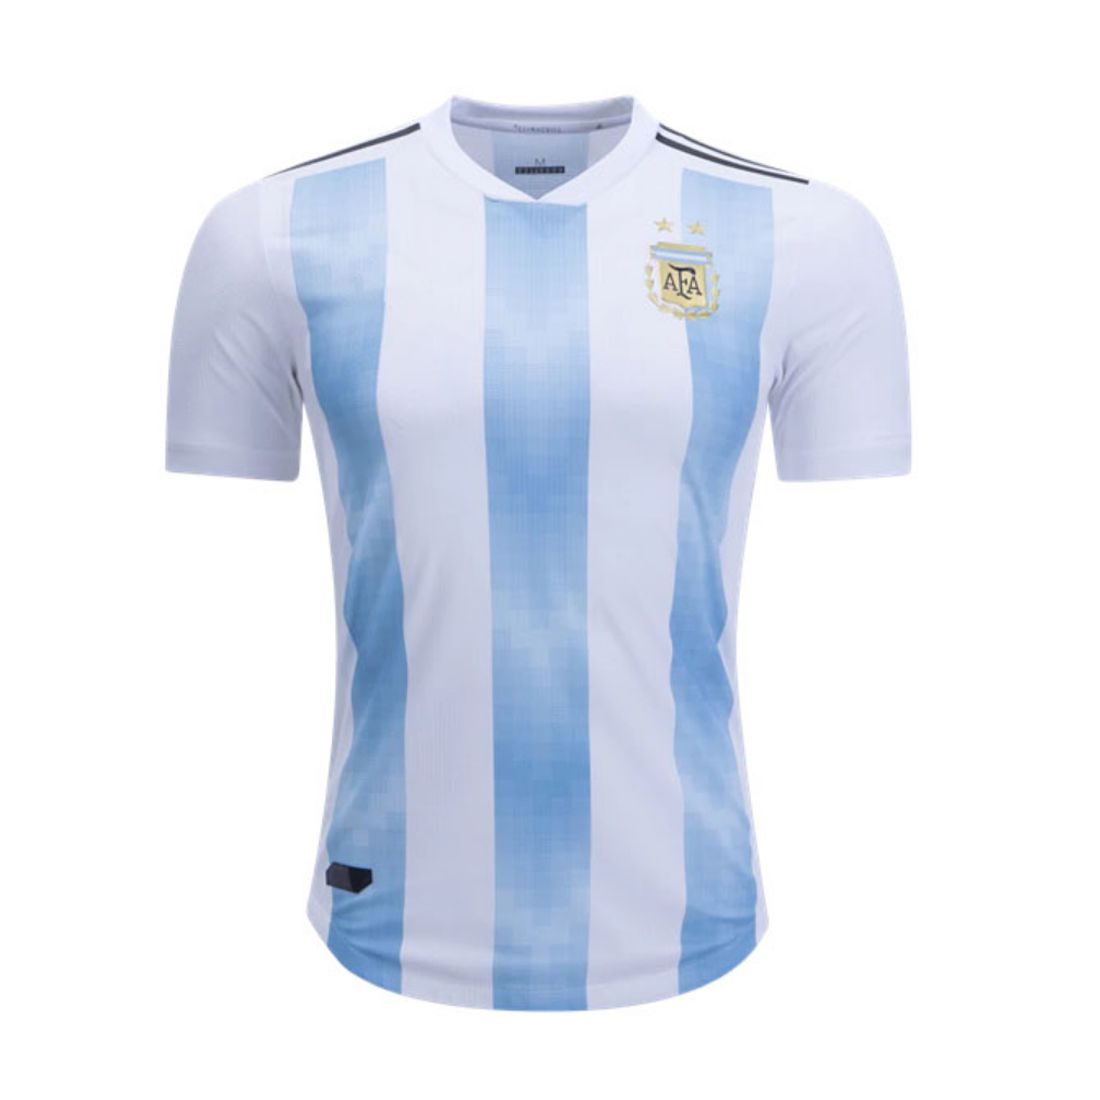 brand new 8dda1 d6f49 FIFA World Cup Argentina National Team Home Jersey